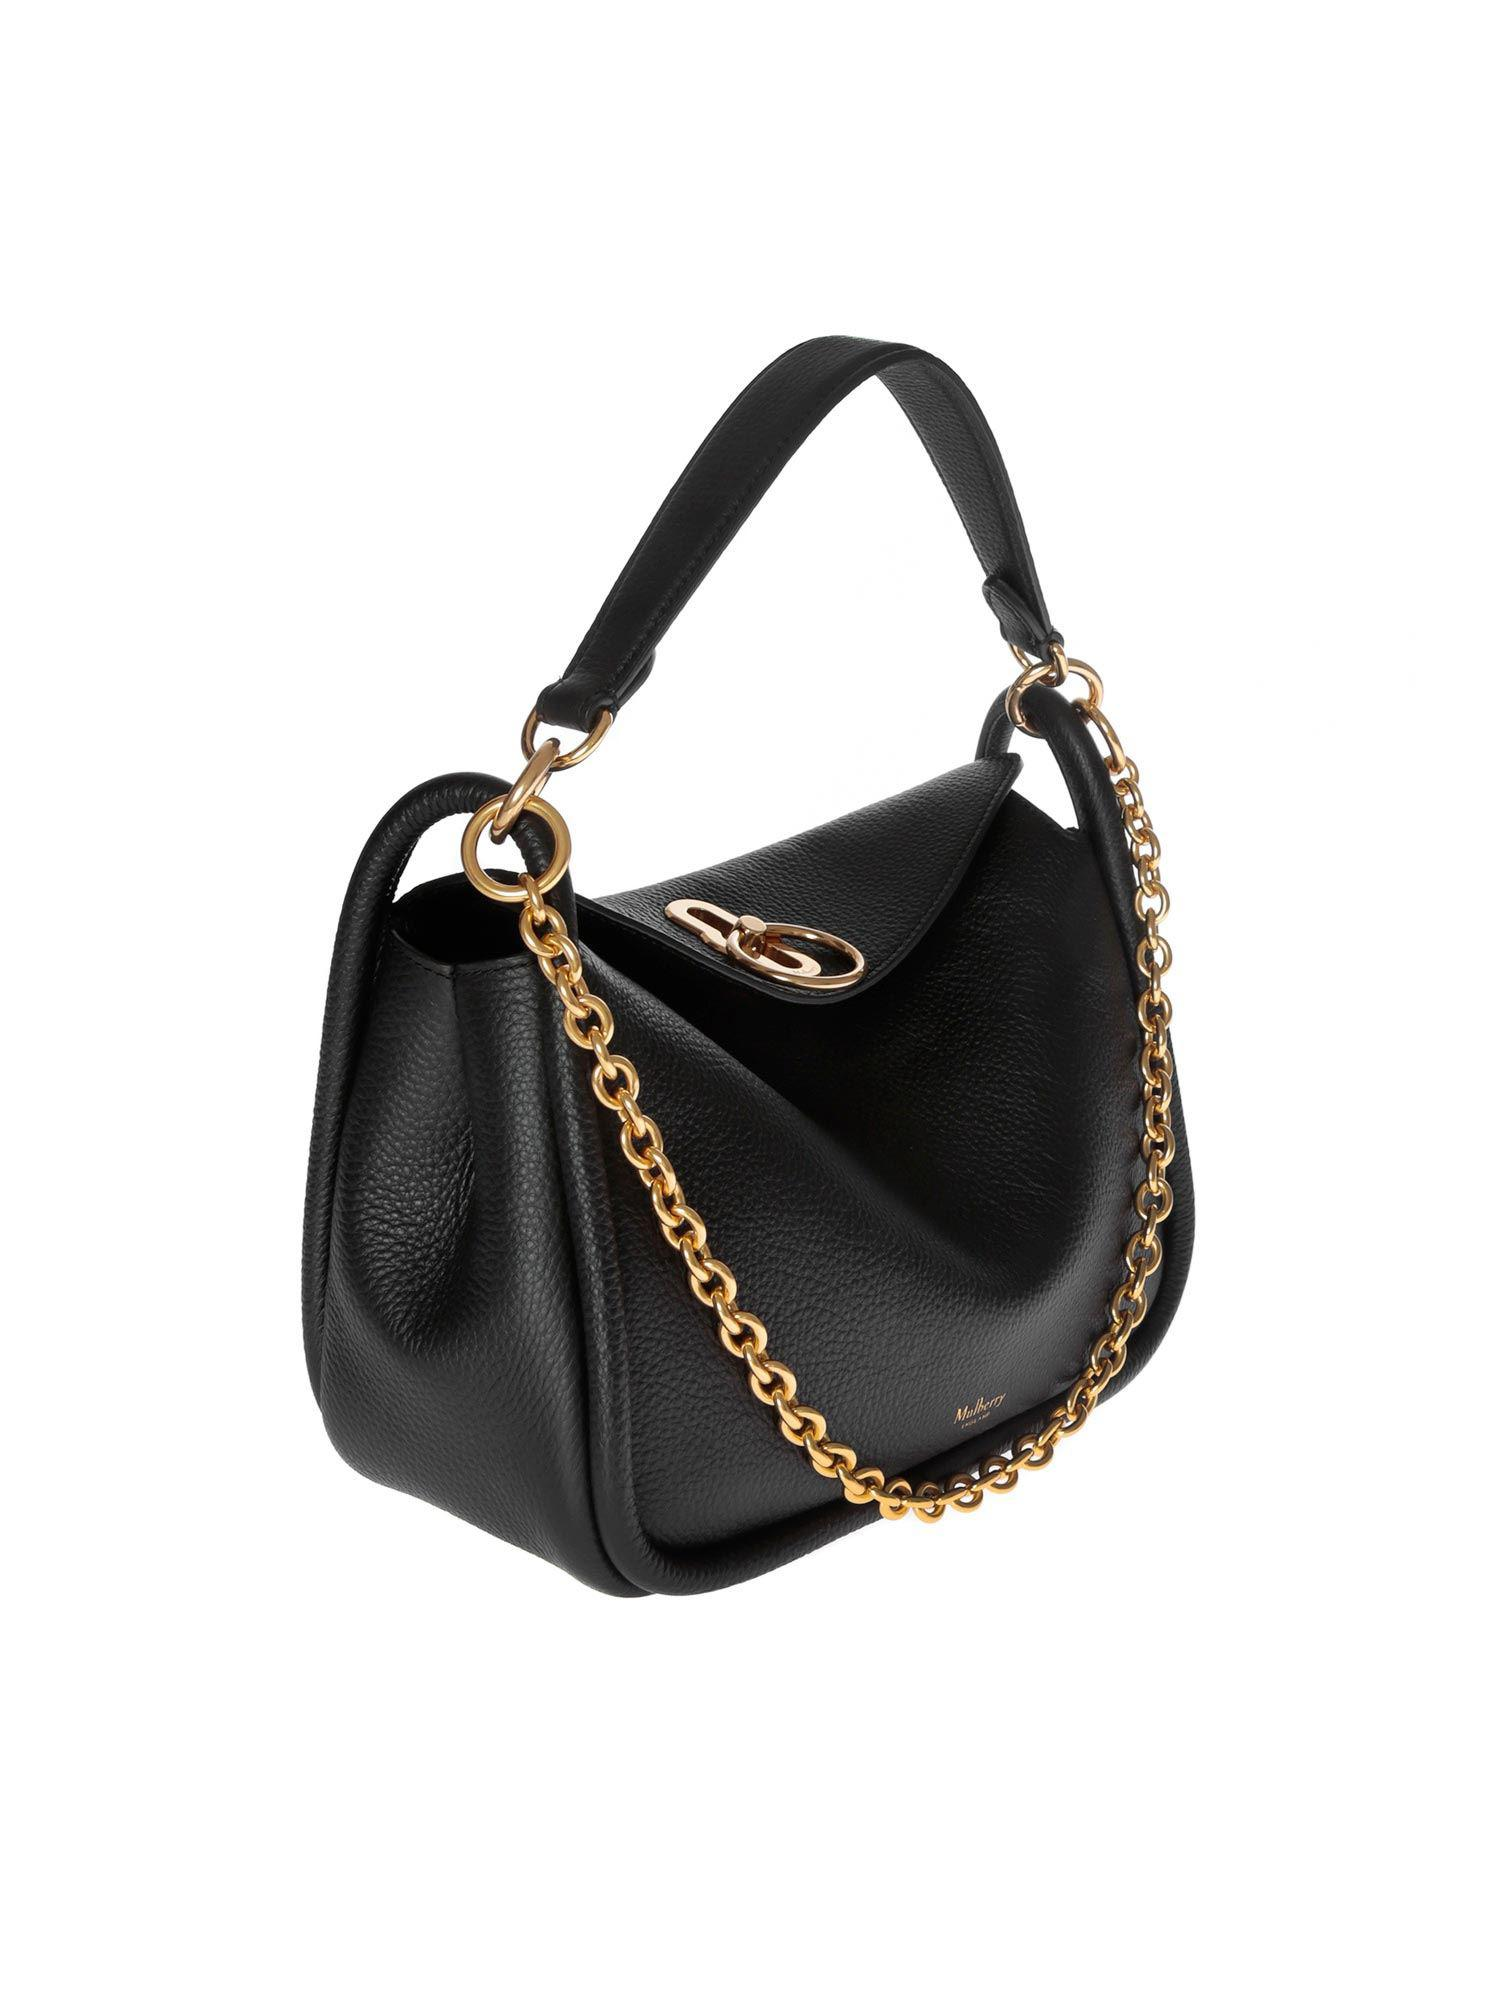 5bc34c685f Lyst - Mulberry Small Leighton Shoulder Bag In Black Leather in Black